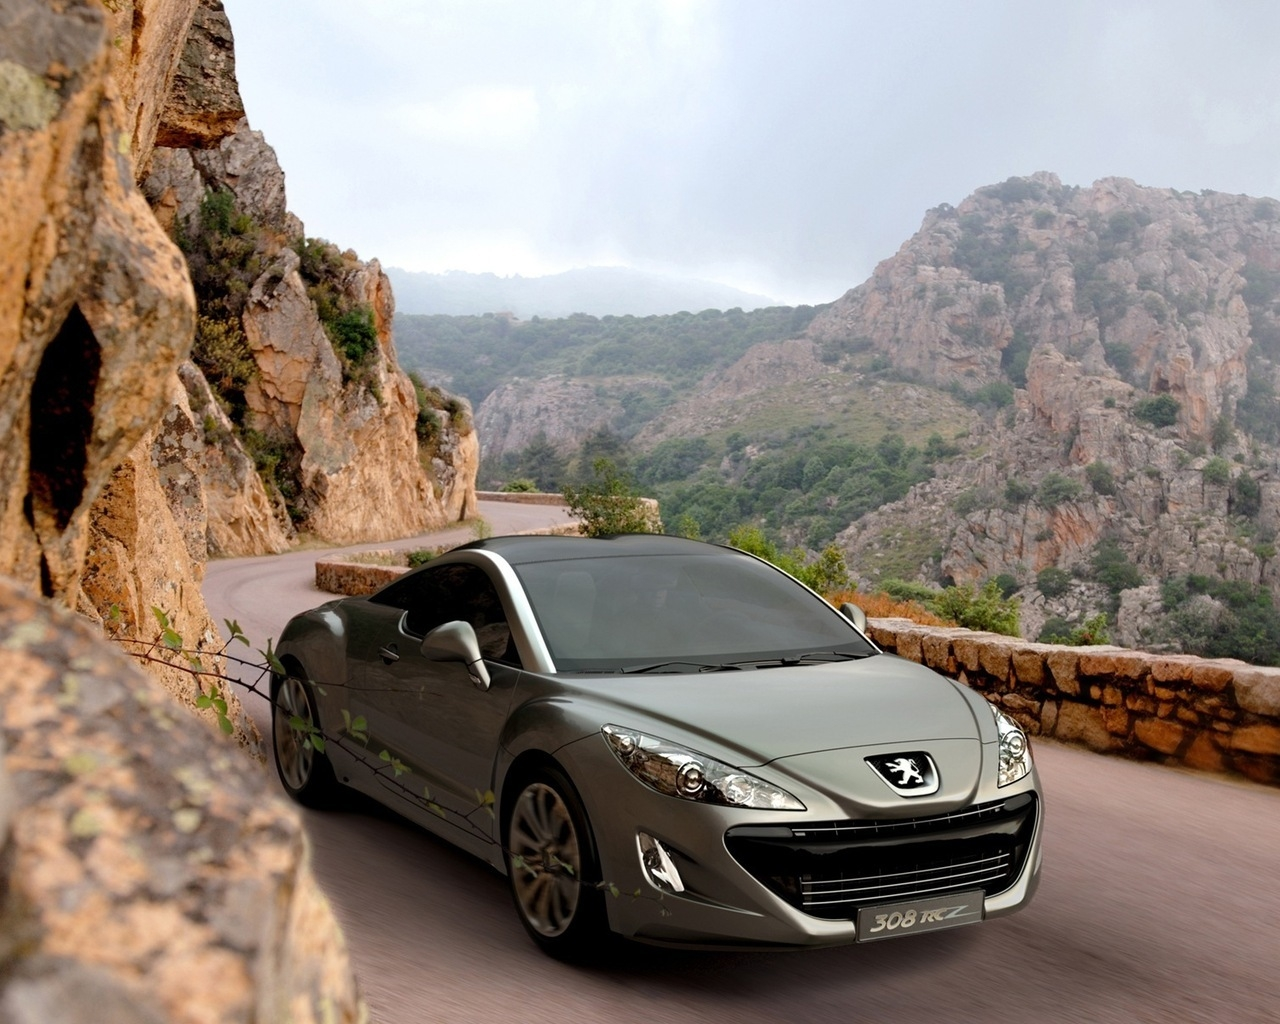 Peugeot 308 RCZ for 1280 x 1024 resolution